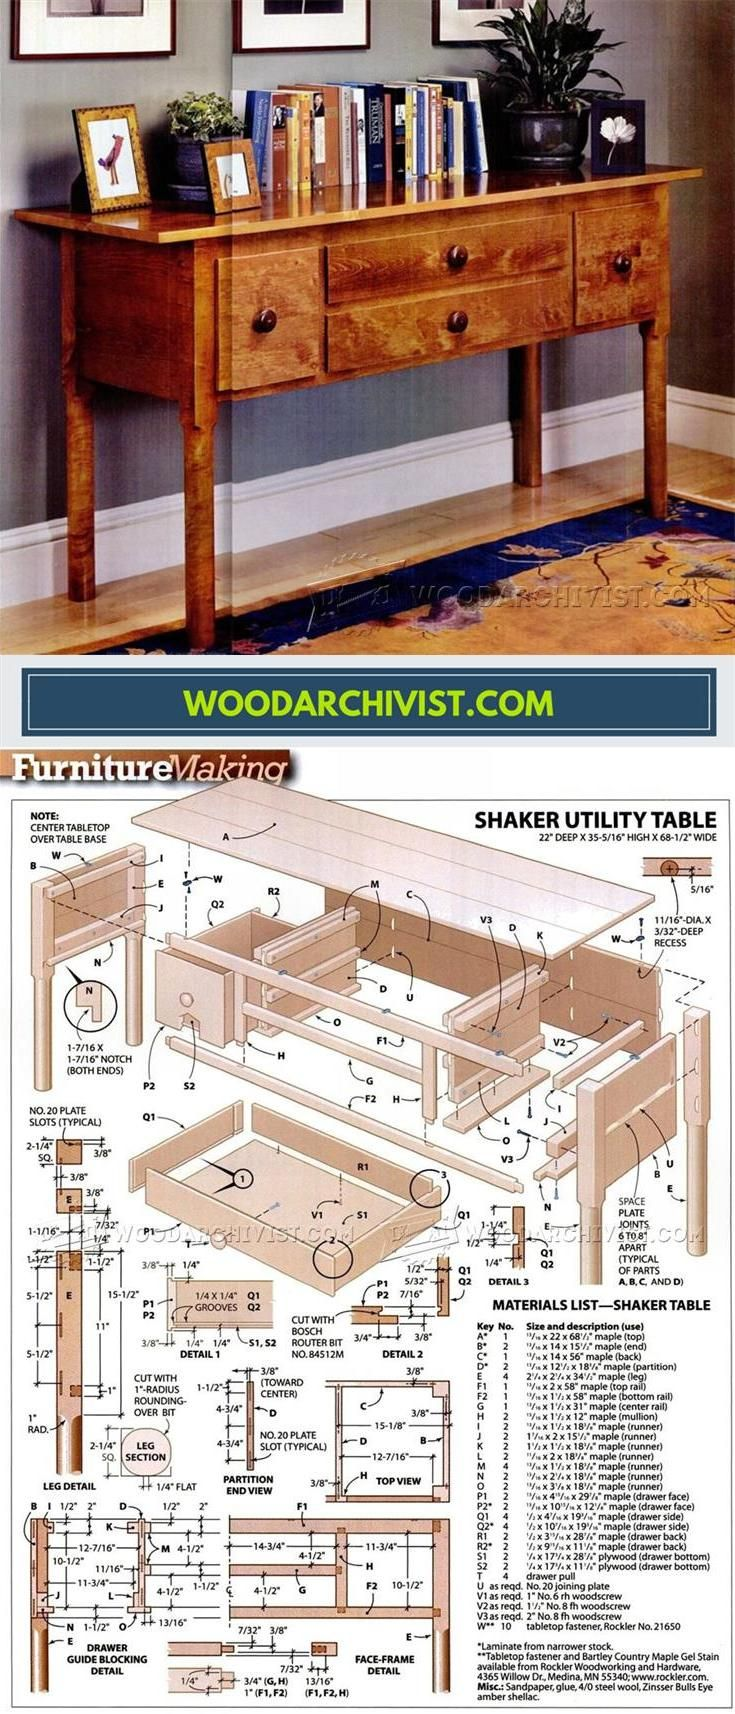 Shaker Utility Table Plans - Furniture Plans and Projects | WoodArchivist.com